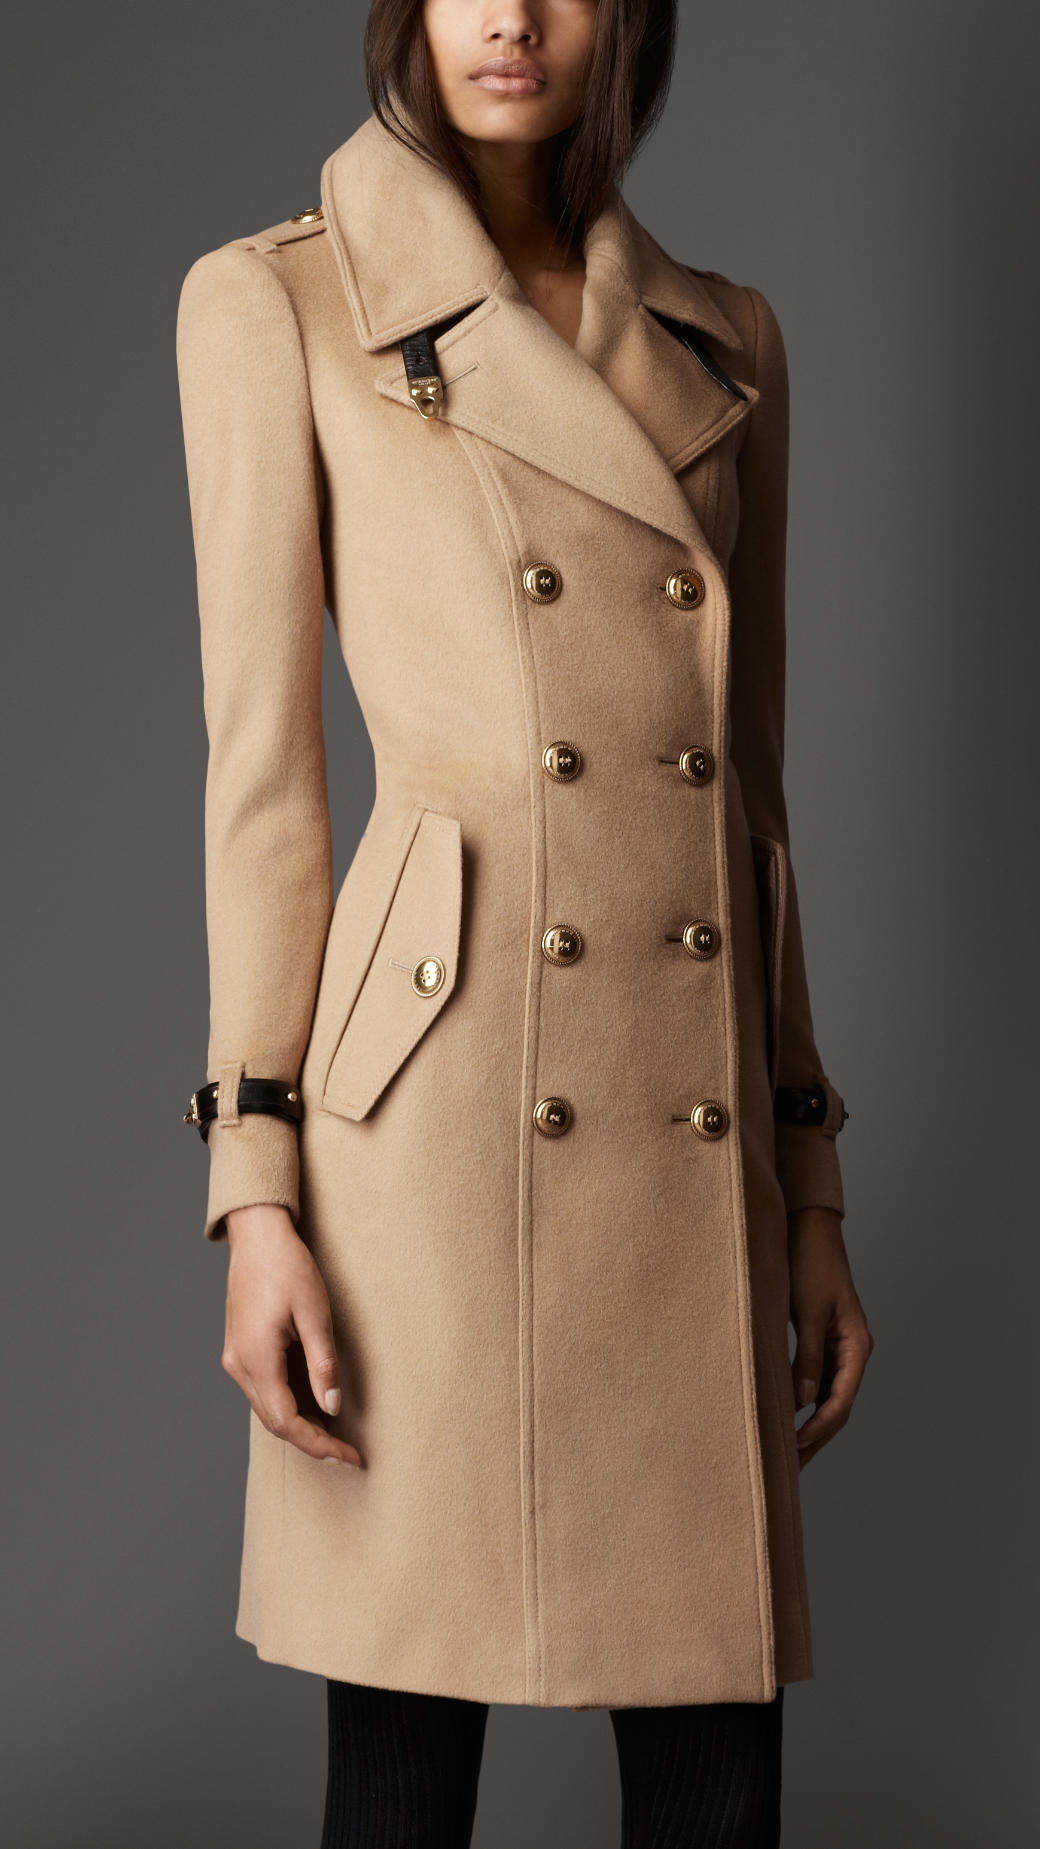 burberry leather detail wool cashmere coat in beige camel lyst. Black Bedroom Furniture Sets. Home Design Ideas